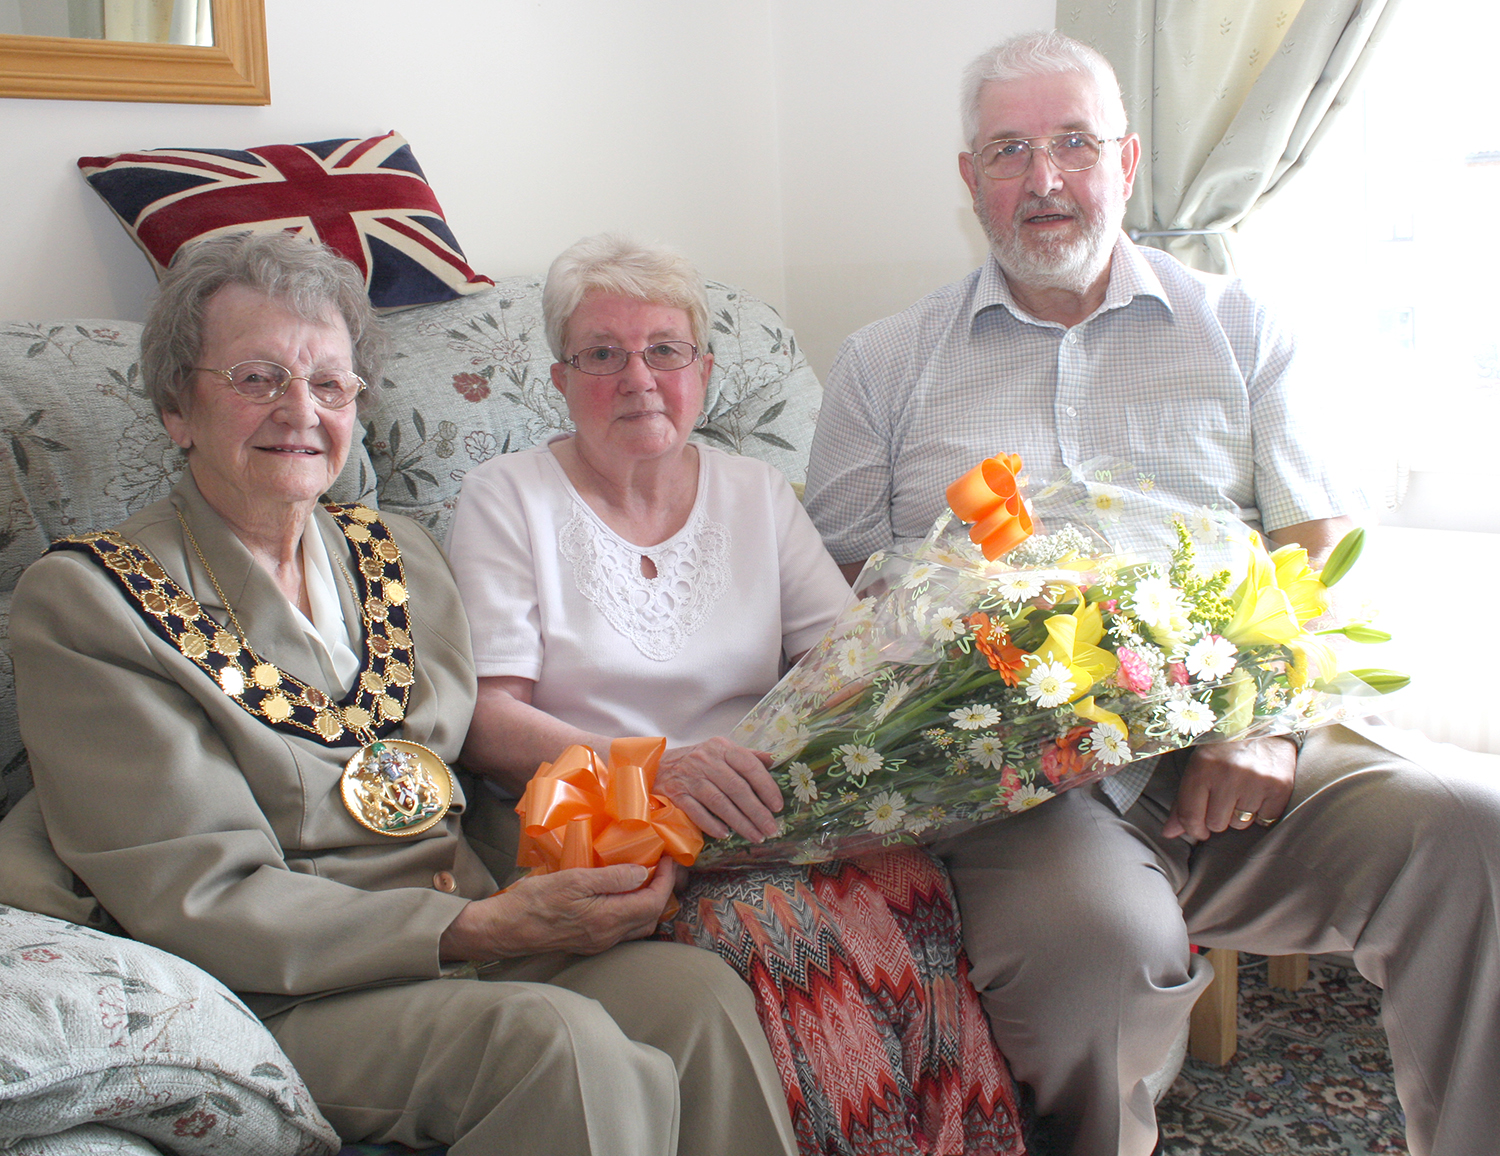 Mayor Calls on Golden Anniversary Couple